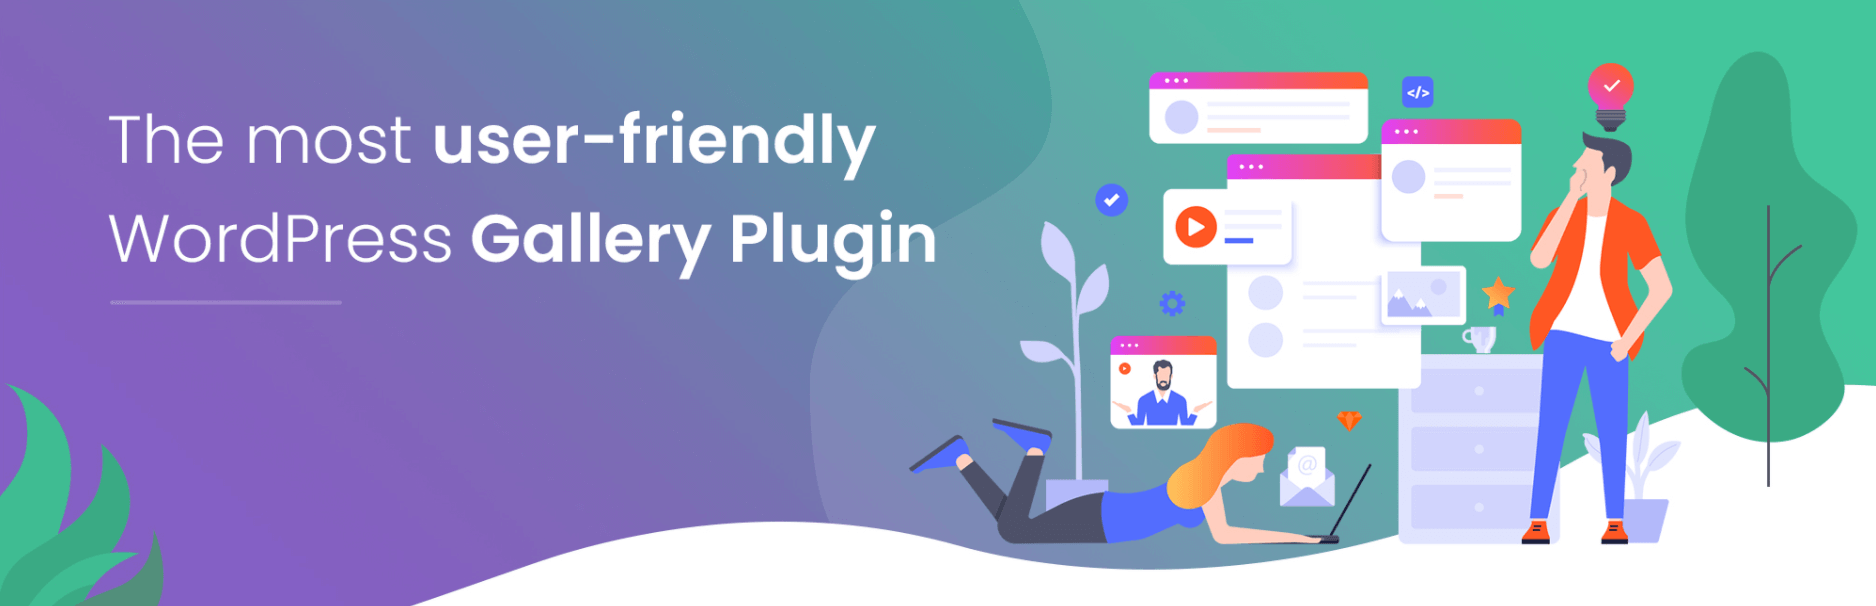 Modula - the most user-friendly gallery plugin